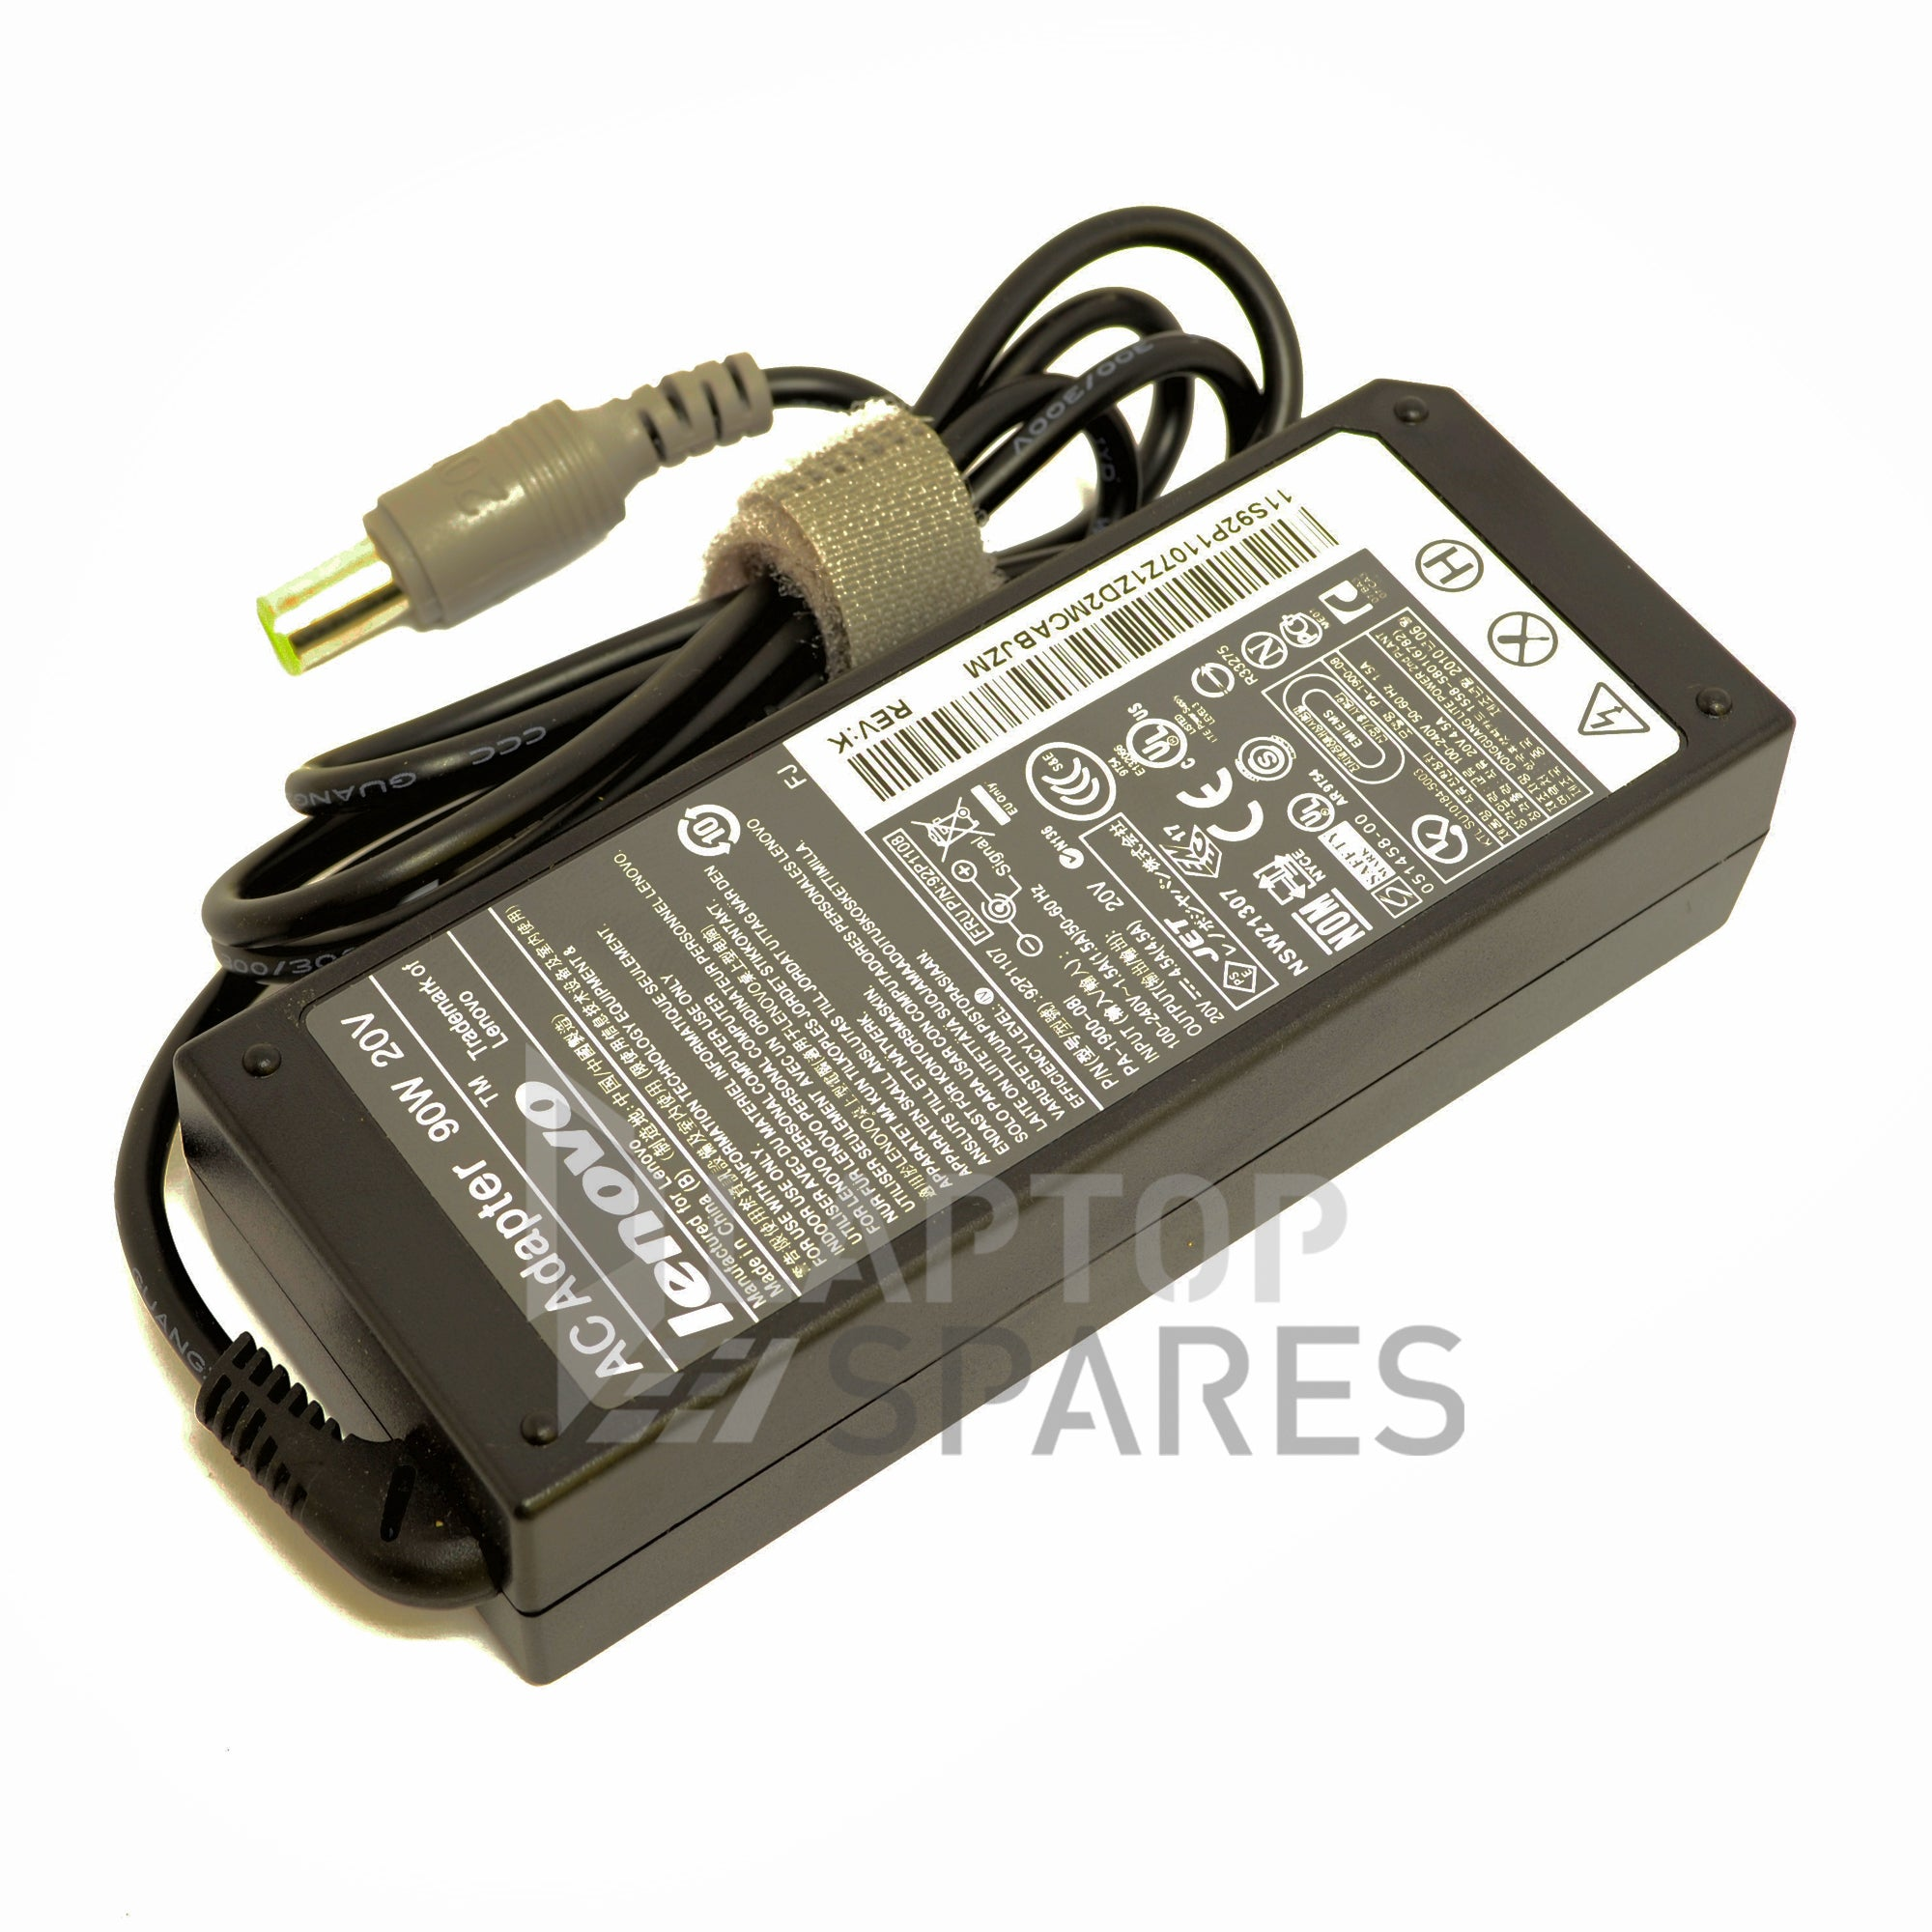 Lenovo ThinkPad Z60t 2514 251479U Laptop AC Adapter Charger